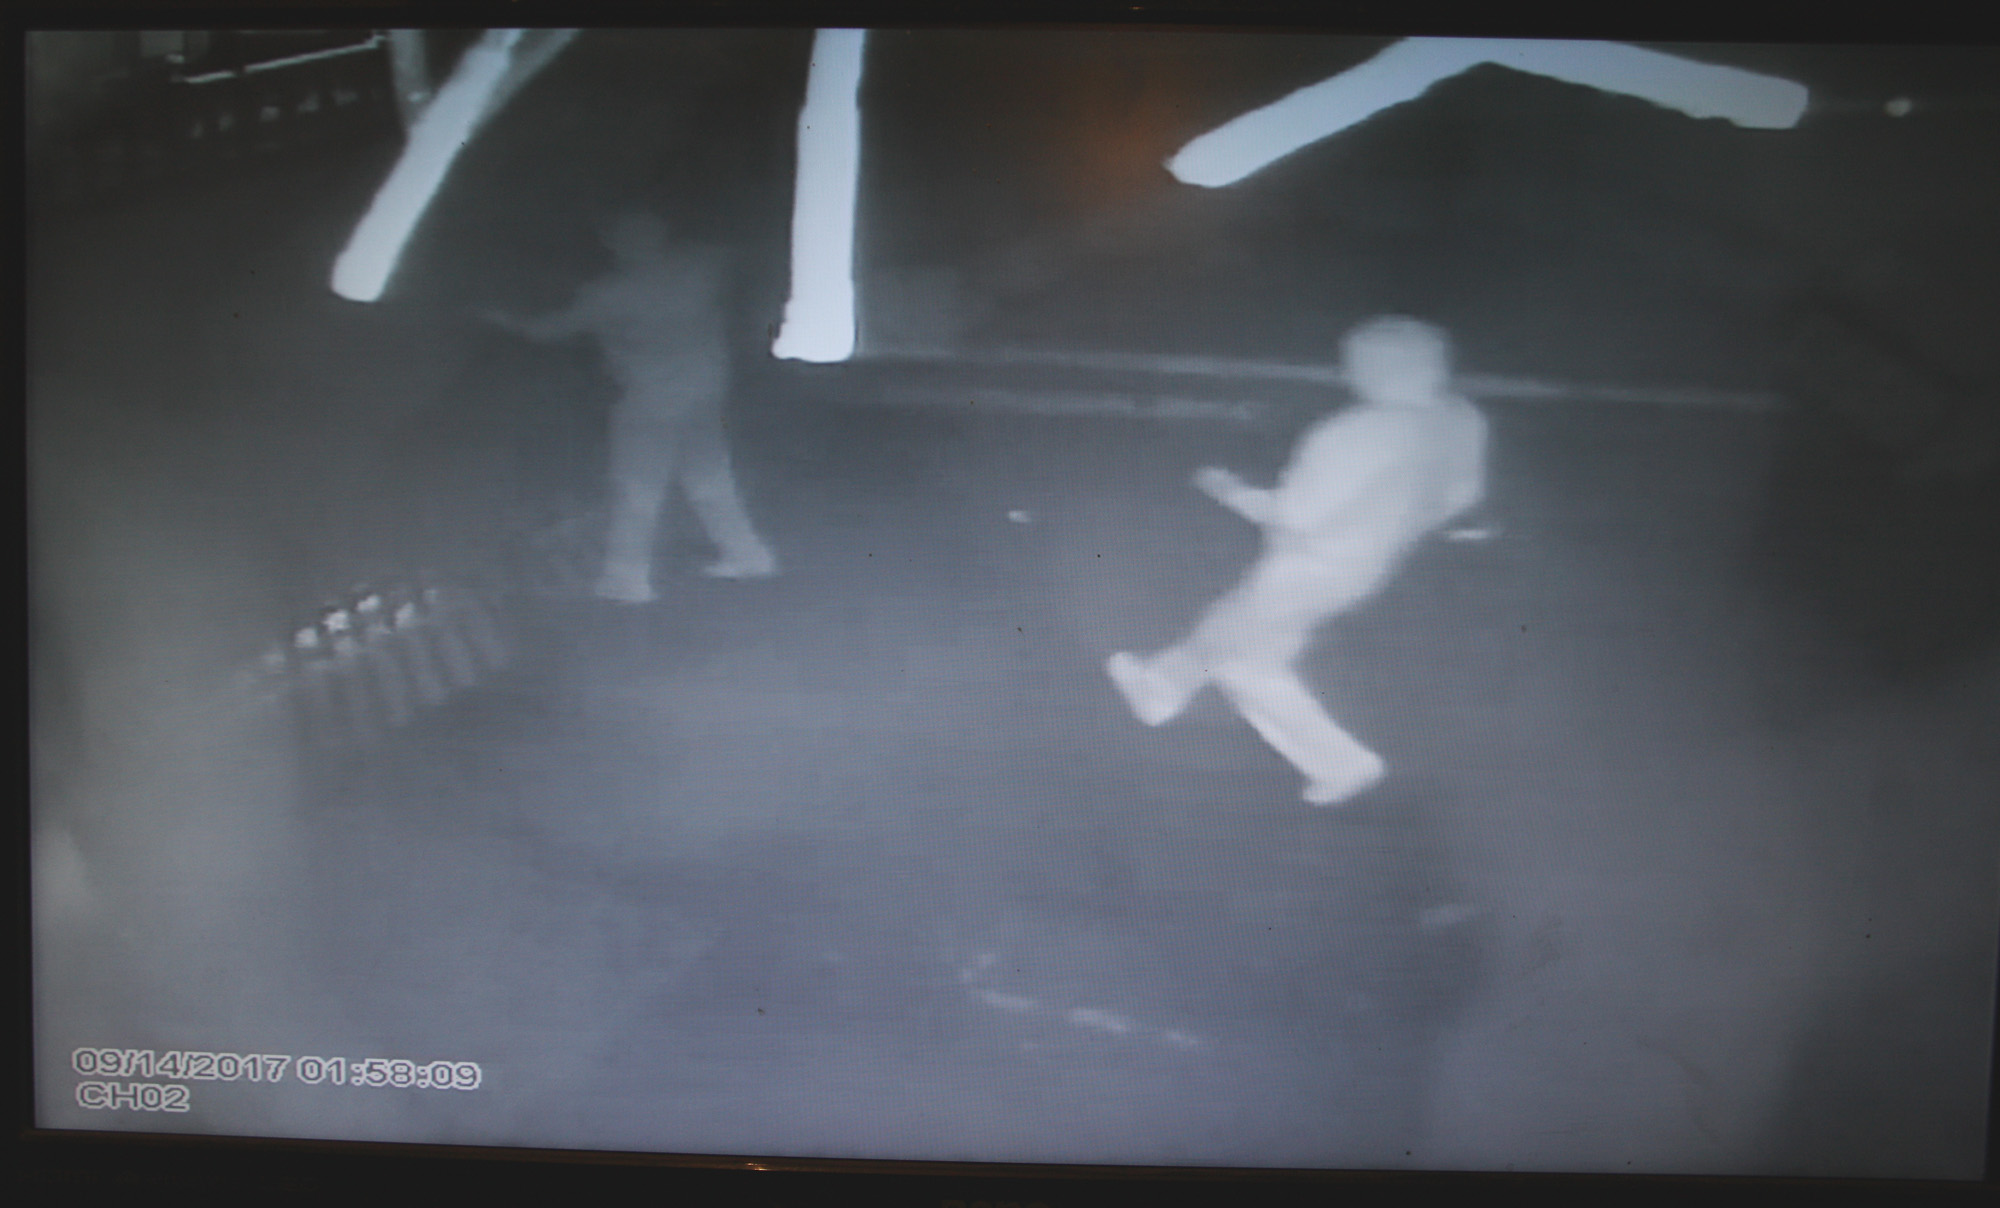 CCTV image from Oldpark robbery